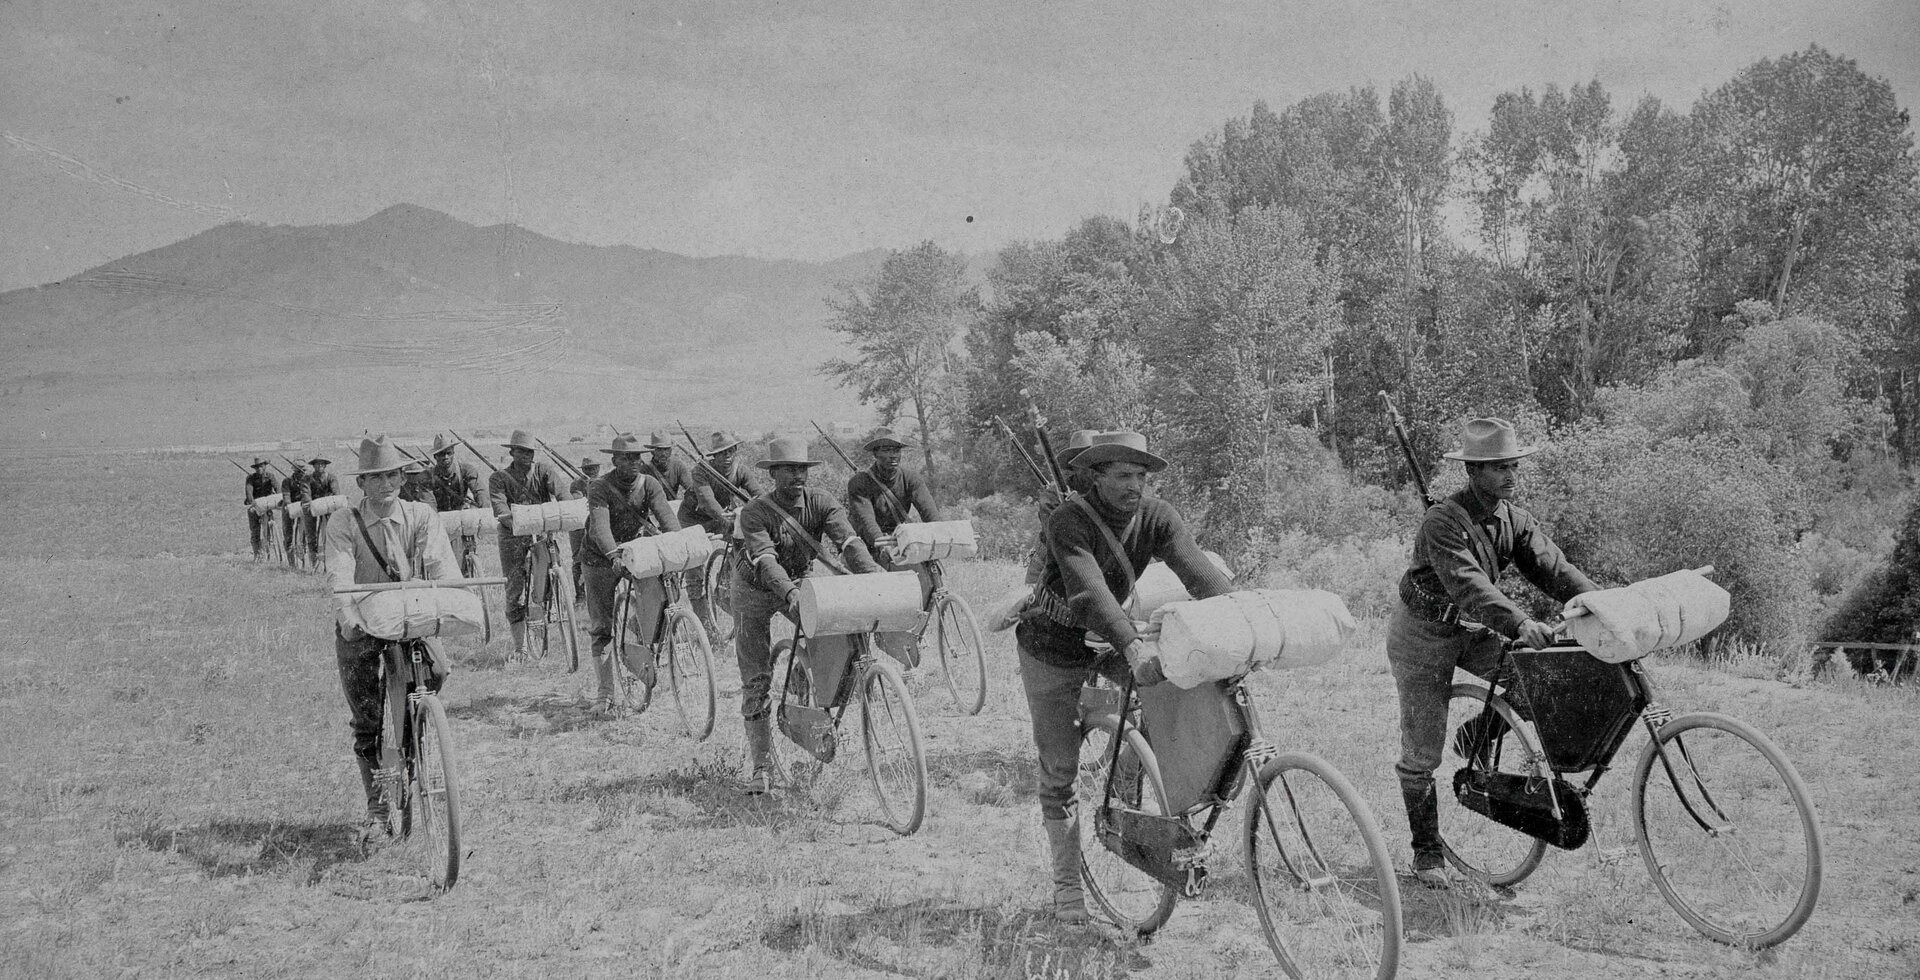 You don't need high-tech to be ahead of the time. Soldiers from the 25th Infantry Regiment push their fully loaded bikes outside of Fort Missoula, MT in 1897. The man on the far left is Lt. James A. Moss, who would join the 25th in Cuba a year later during the Spanish-American War. Photo: Frank M. Ingalls